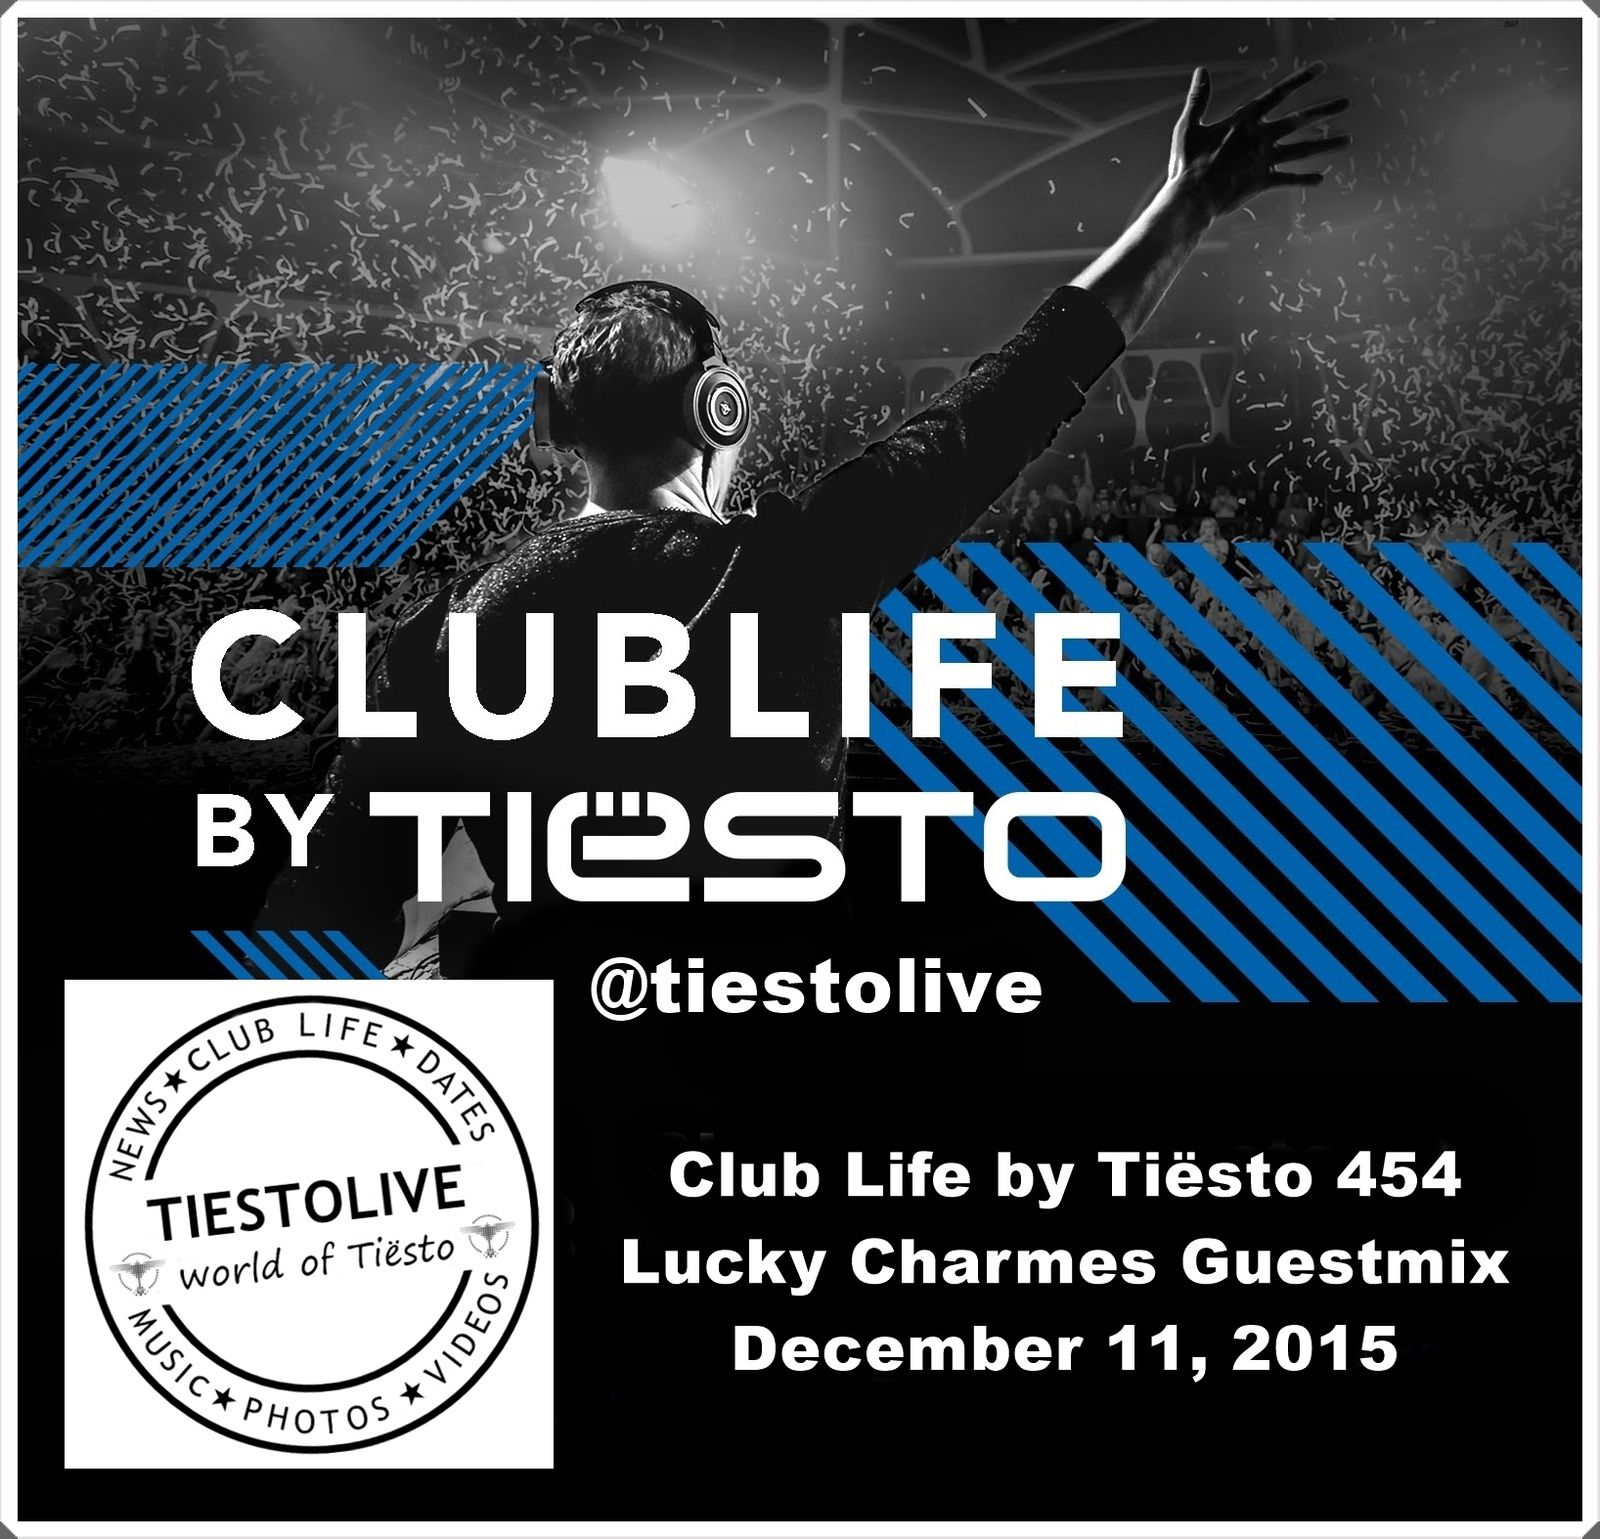 Club Life by Tiësto 454 - Lucky Charmes Guestmix - December 11, 2015